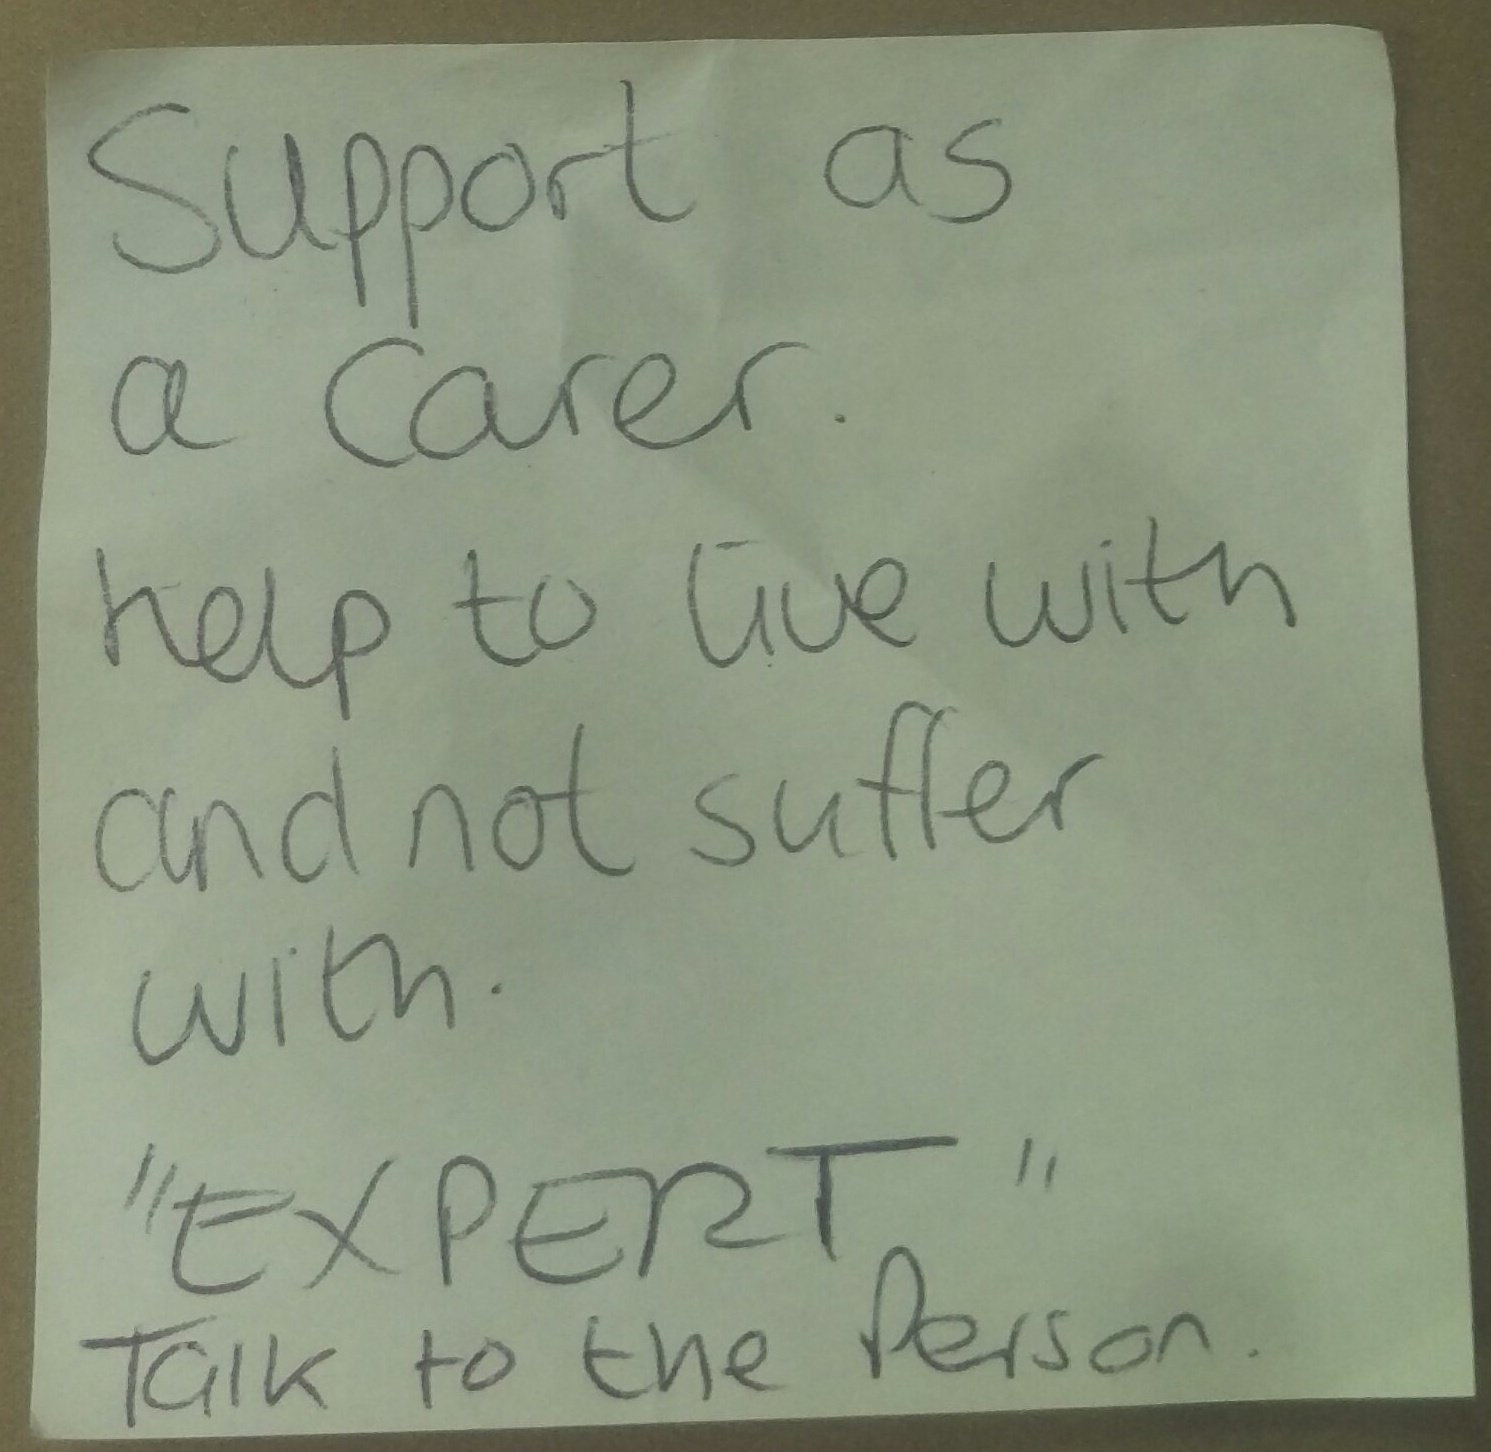 "Today's #dementiado post-it...  Support as a carer  Help to live with, not suffer with  ""Expert"" talk to the person  😊😊😊  #FabChangeDay https://t.co/IsJvL9X66A"